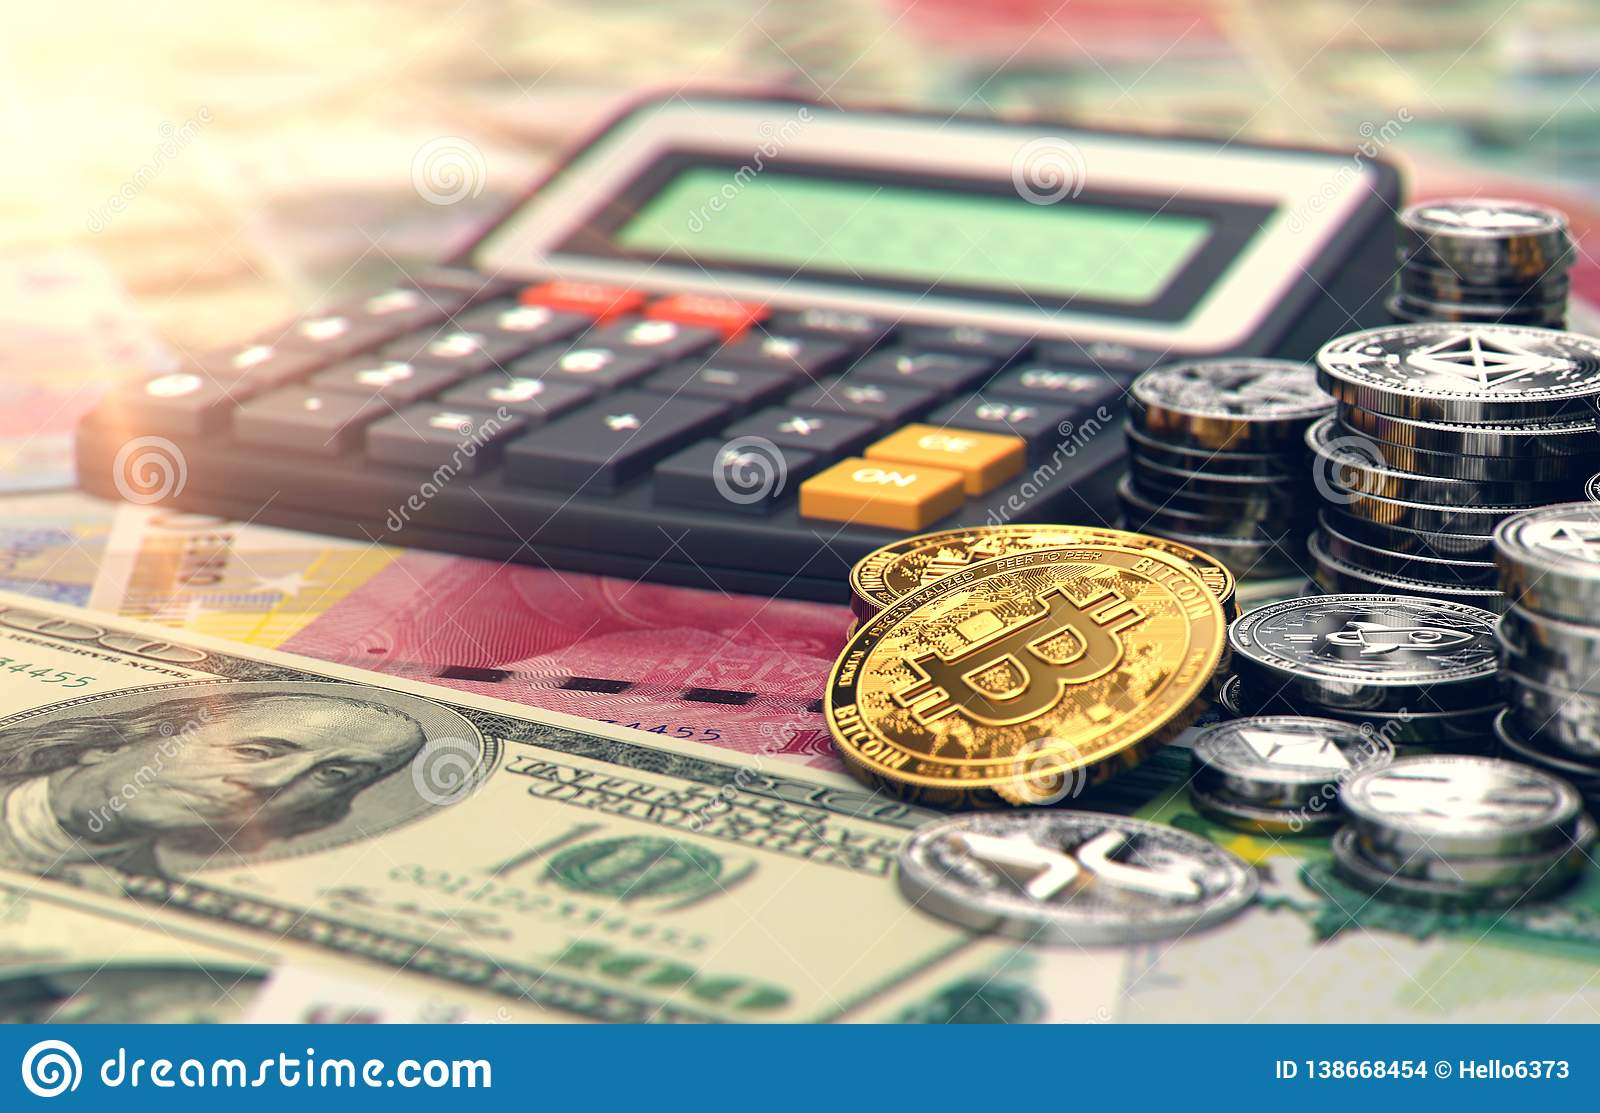 Calculator, Bitcoin And Other Cryptocurrencies  Fees And